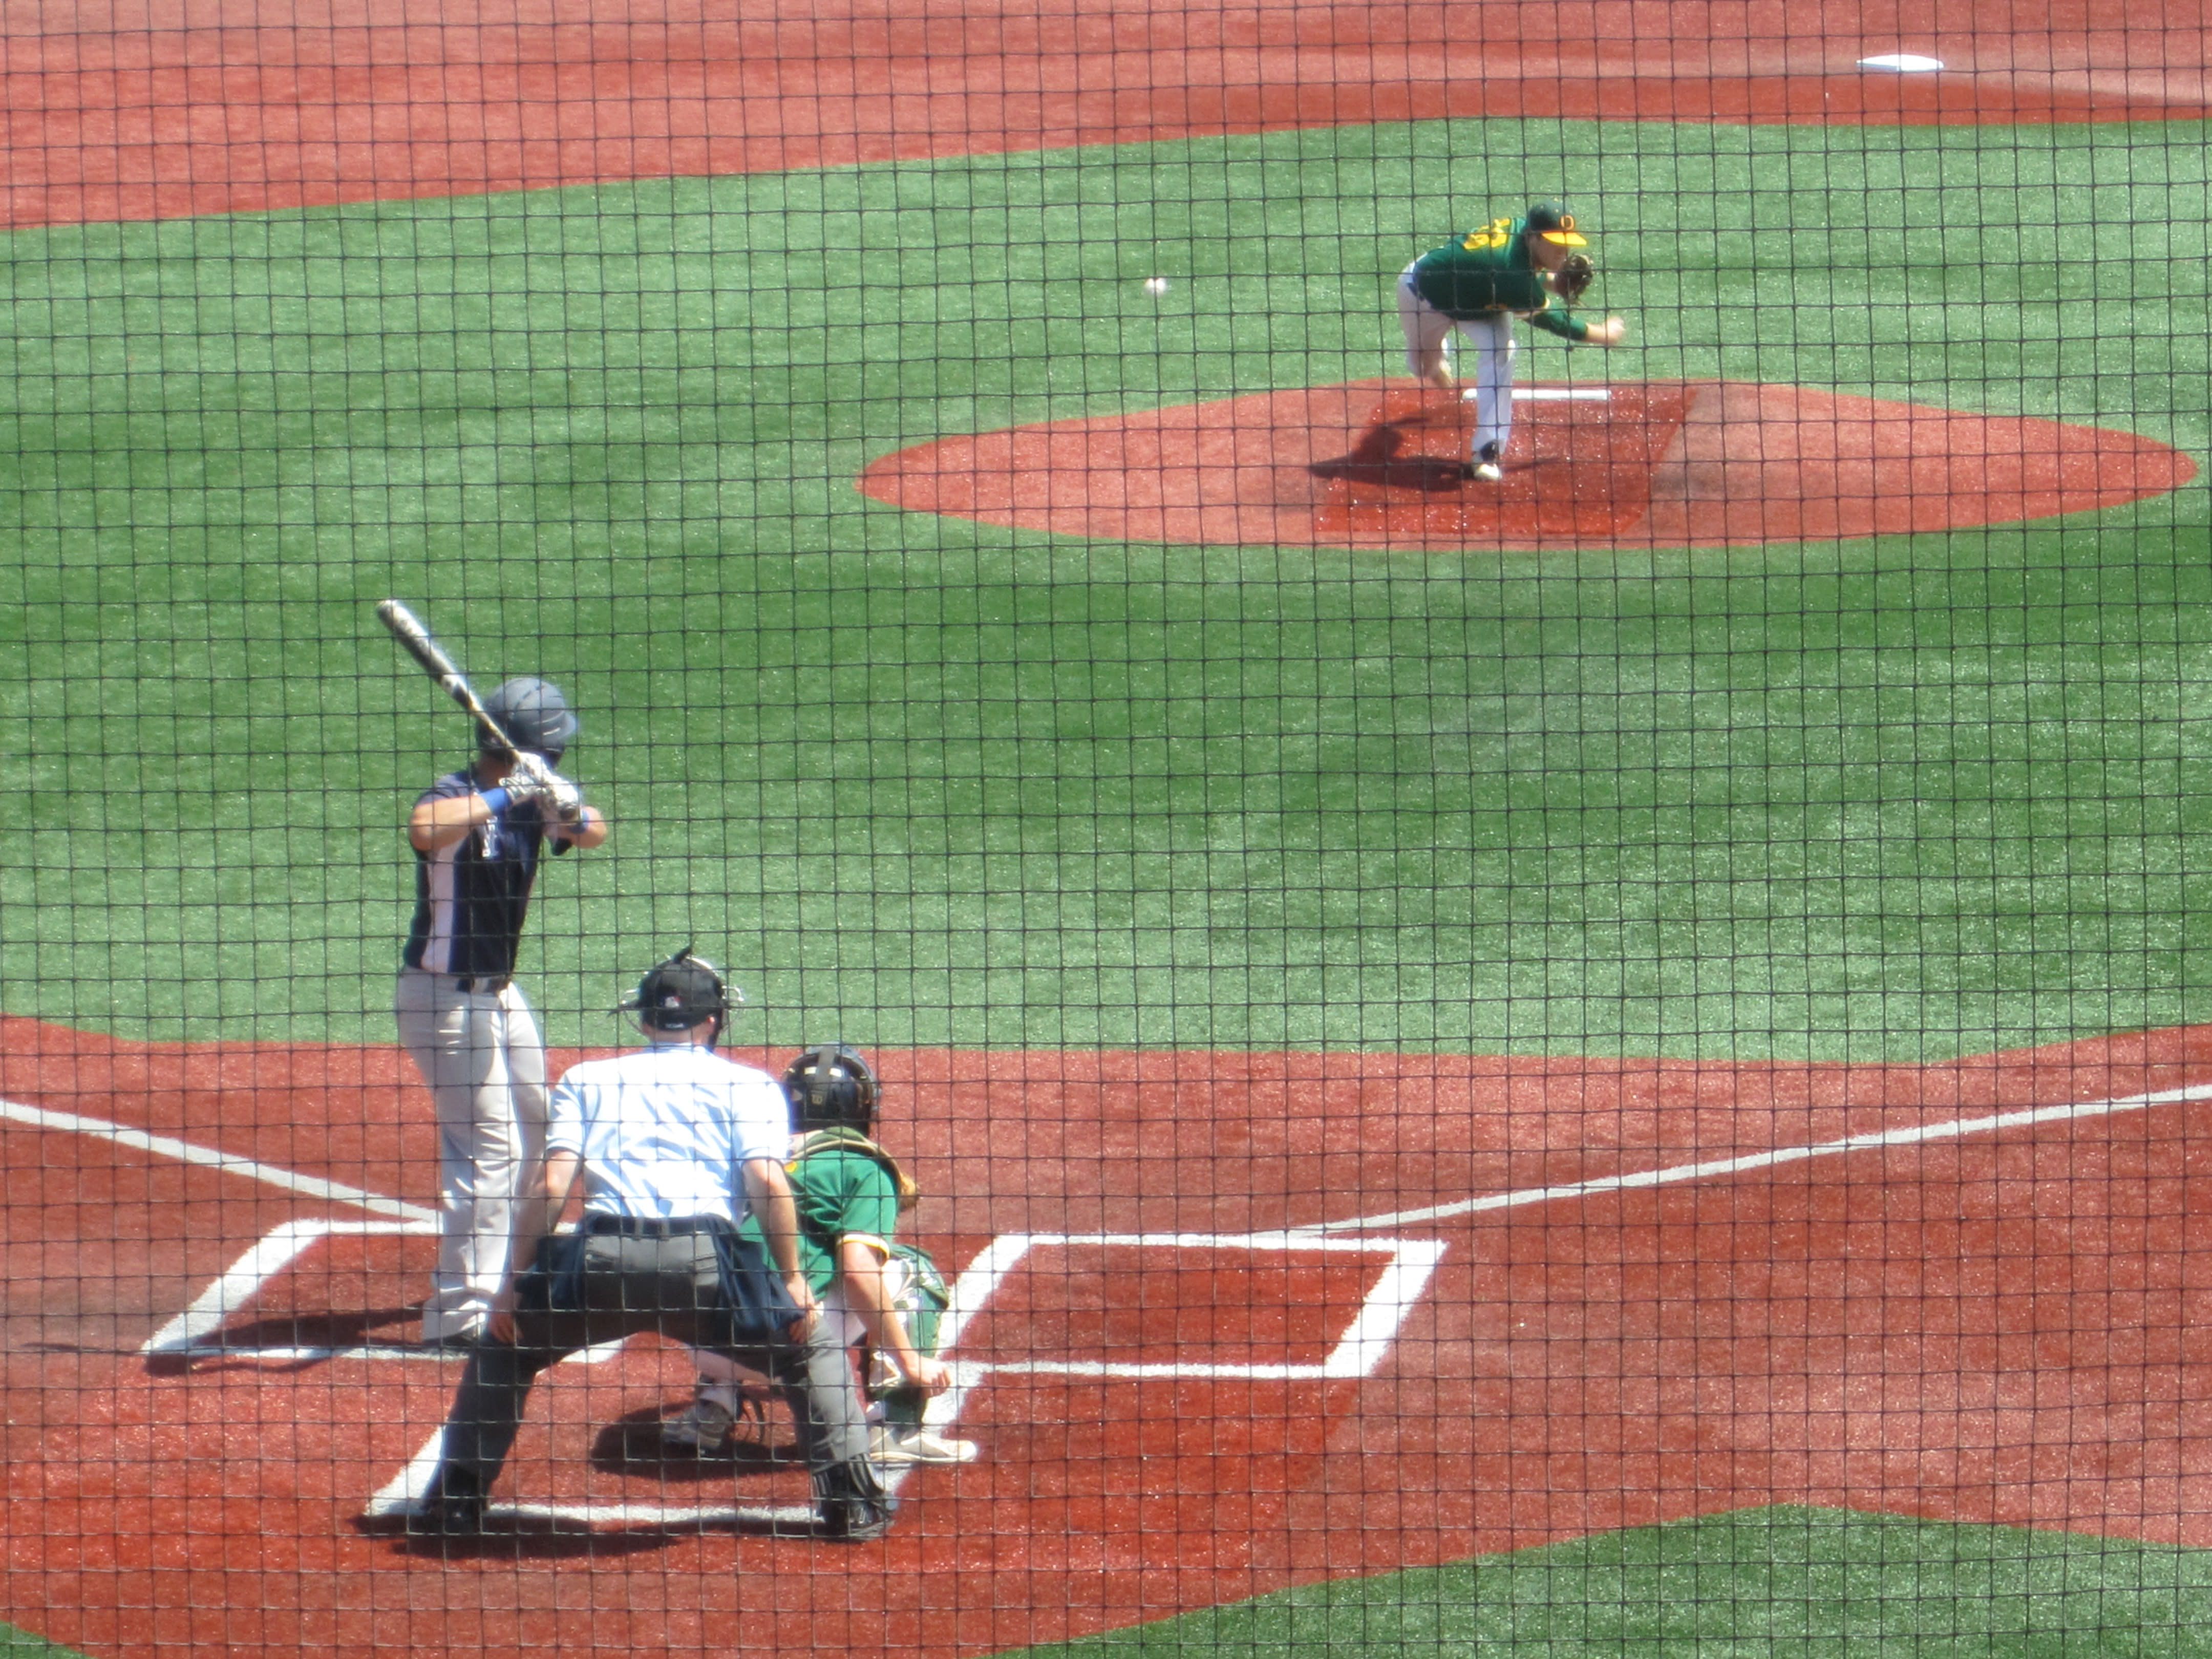 NCBA - from CollClub Sports